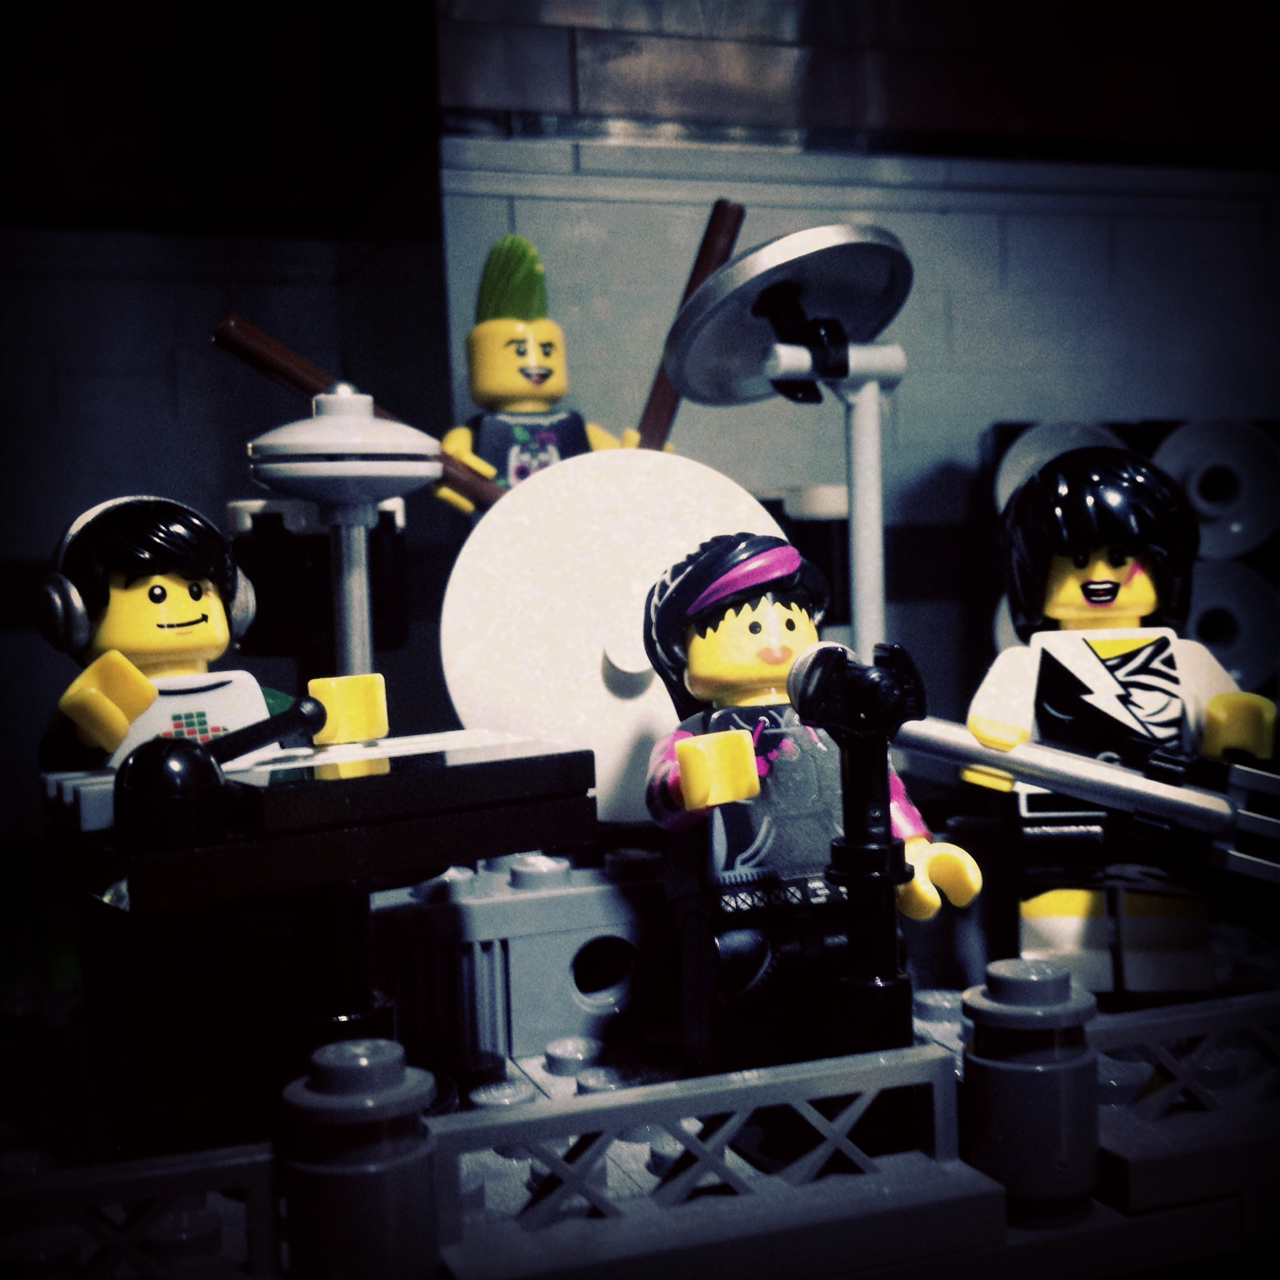 LegoGenre 00214: The Band.